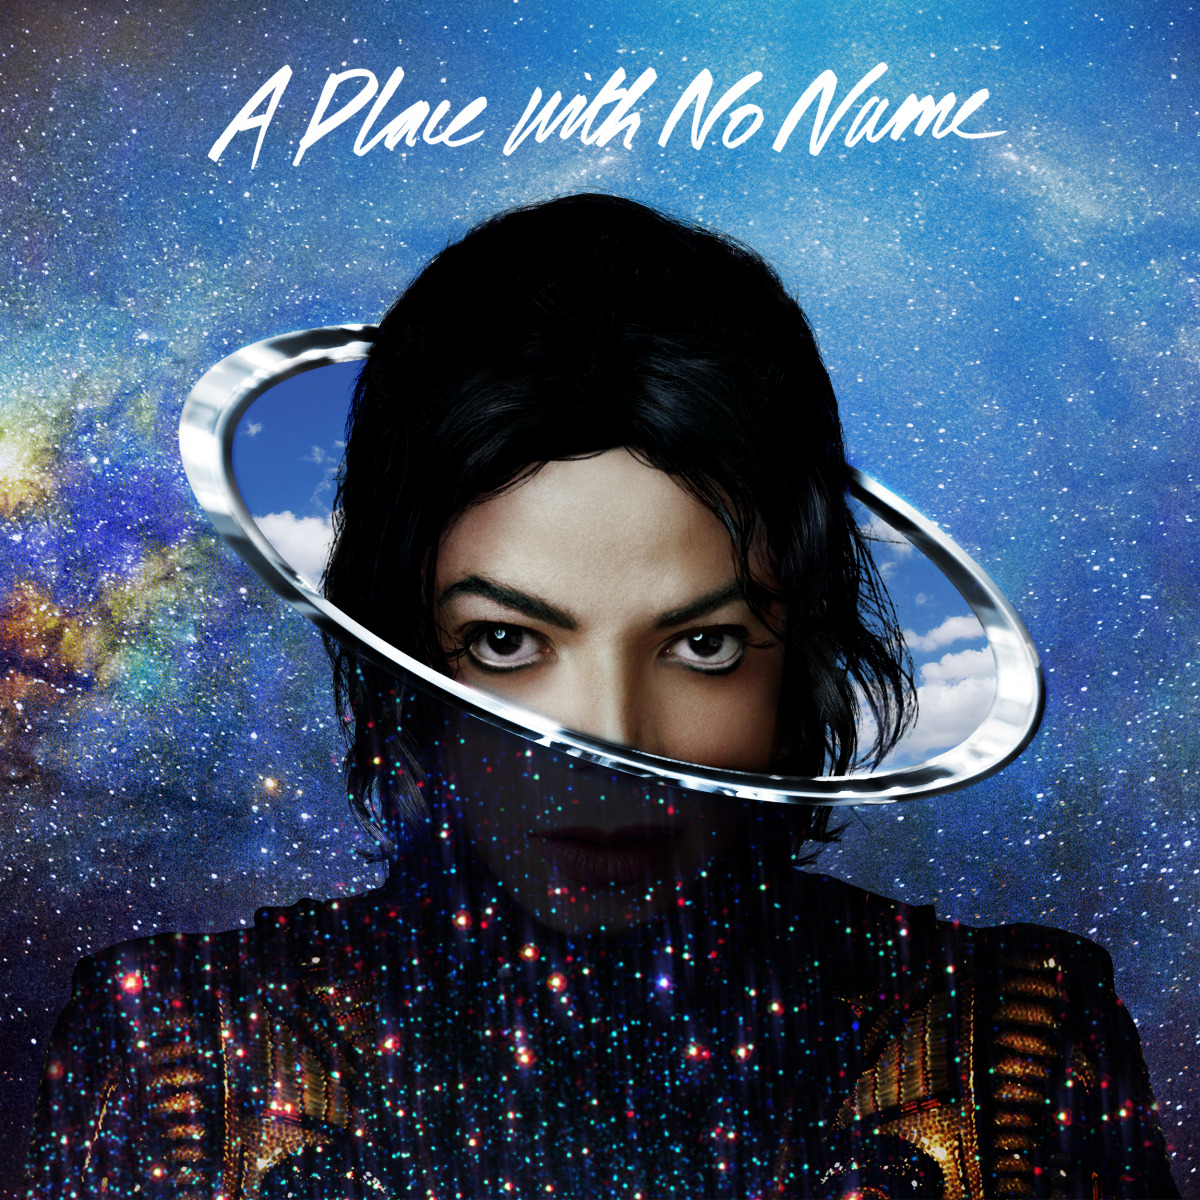 """Music / Michael Jackson / A Place With No Name / Single Cover<span class=""""slide_numbers""""><span class=""""slide_number"""">3</span>/4</span>"""